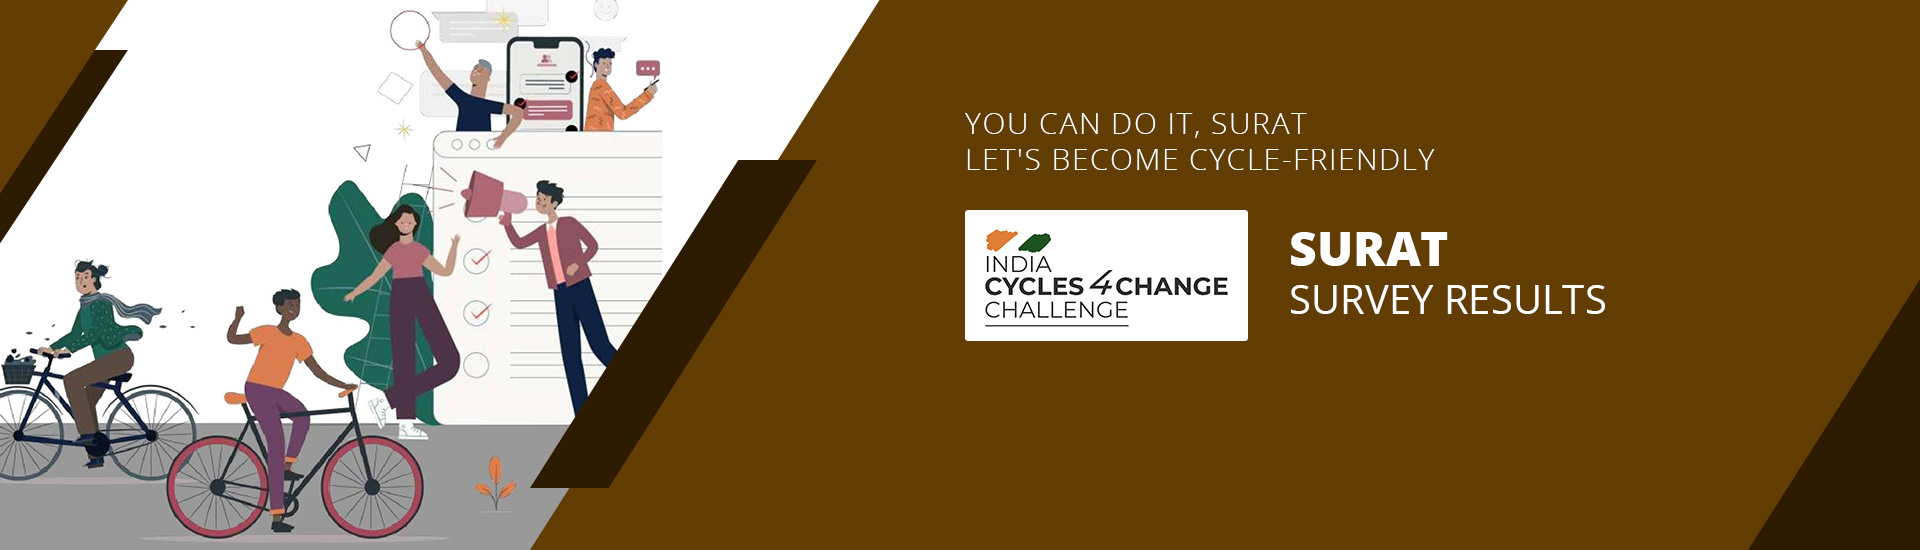 India Cycle4Change Survey - Surat Results